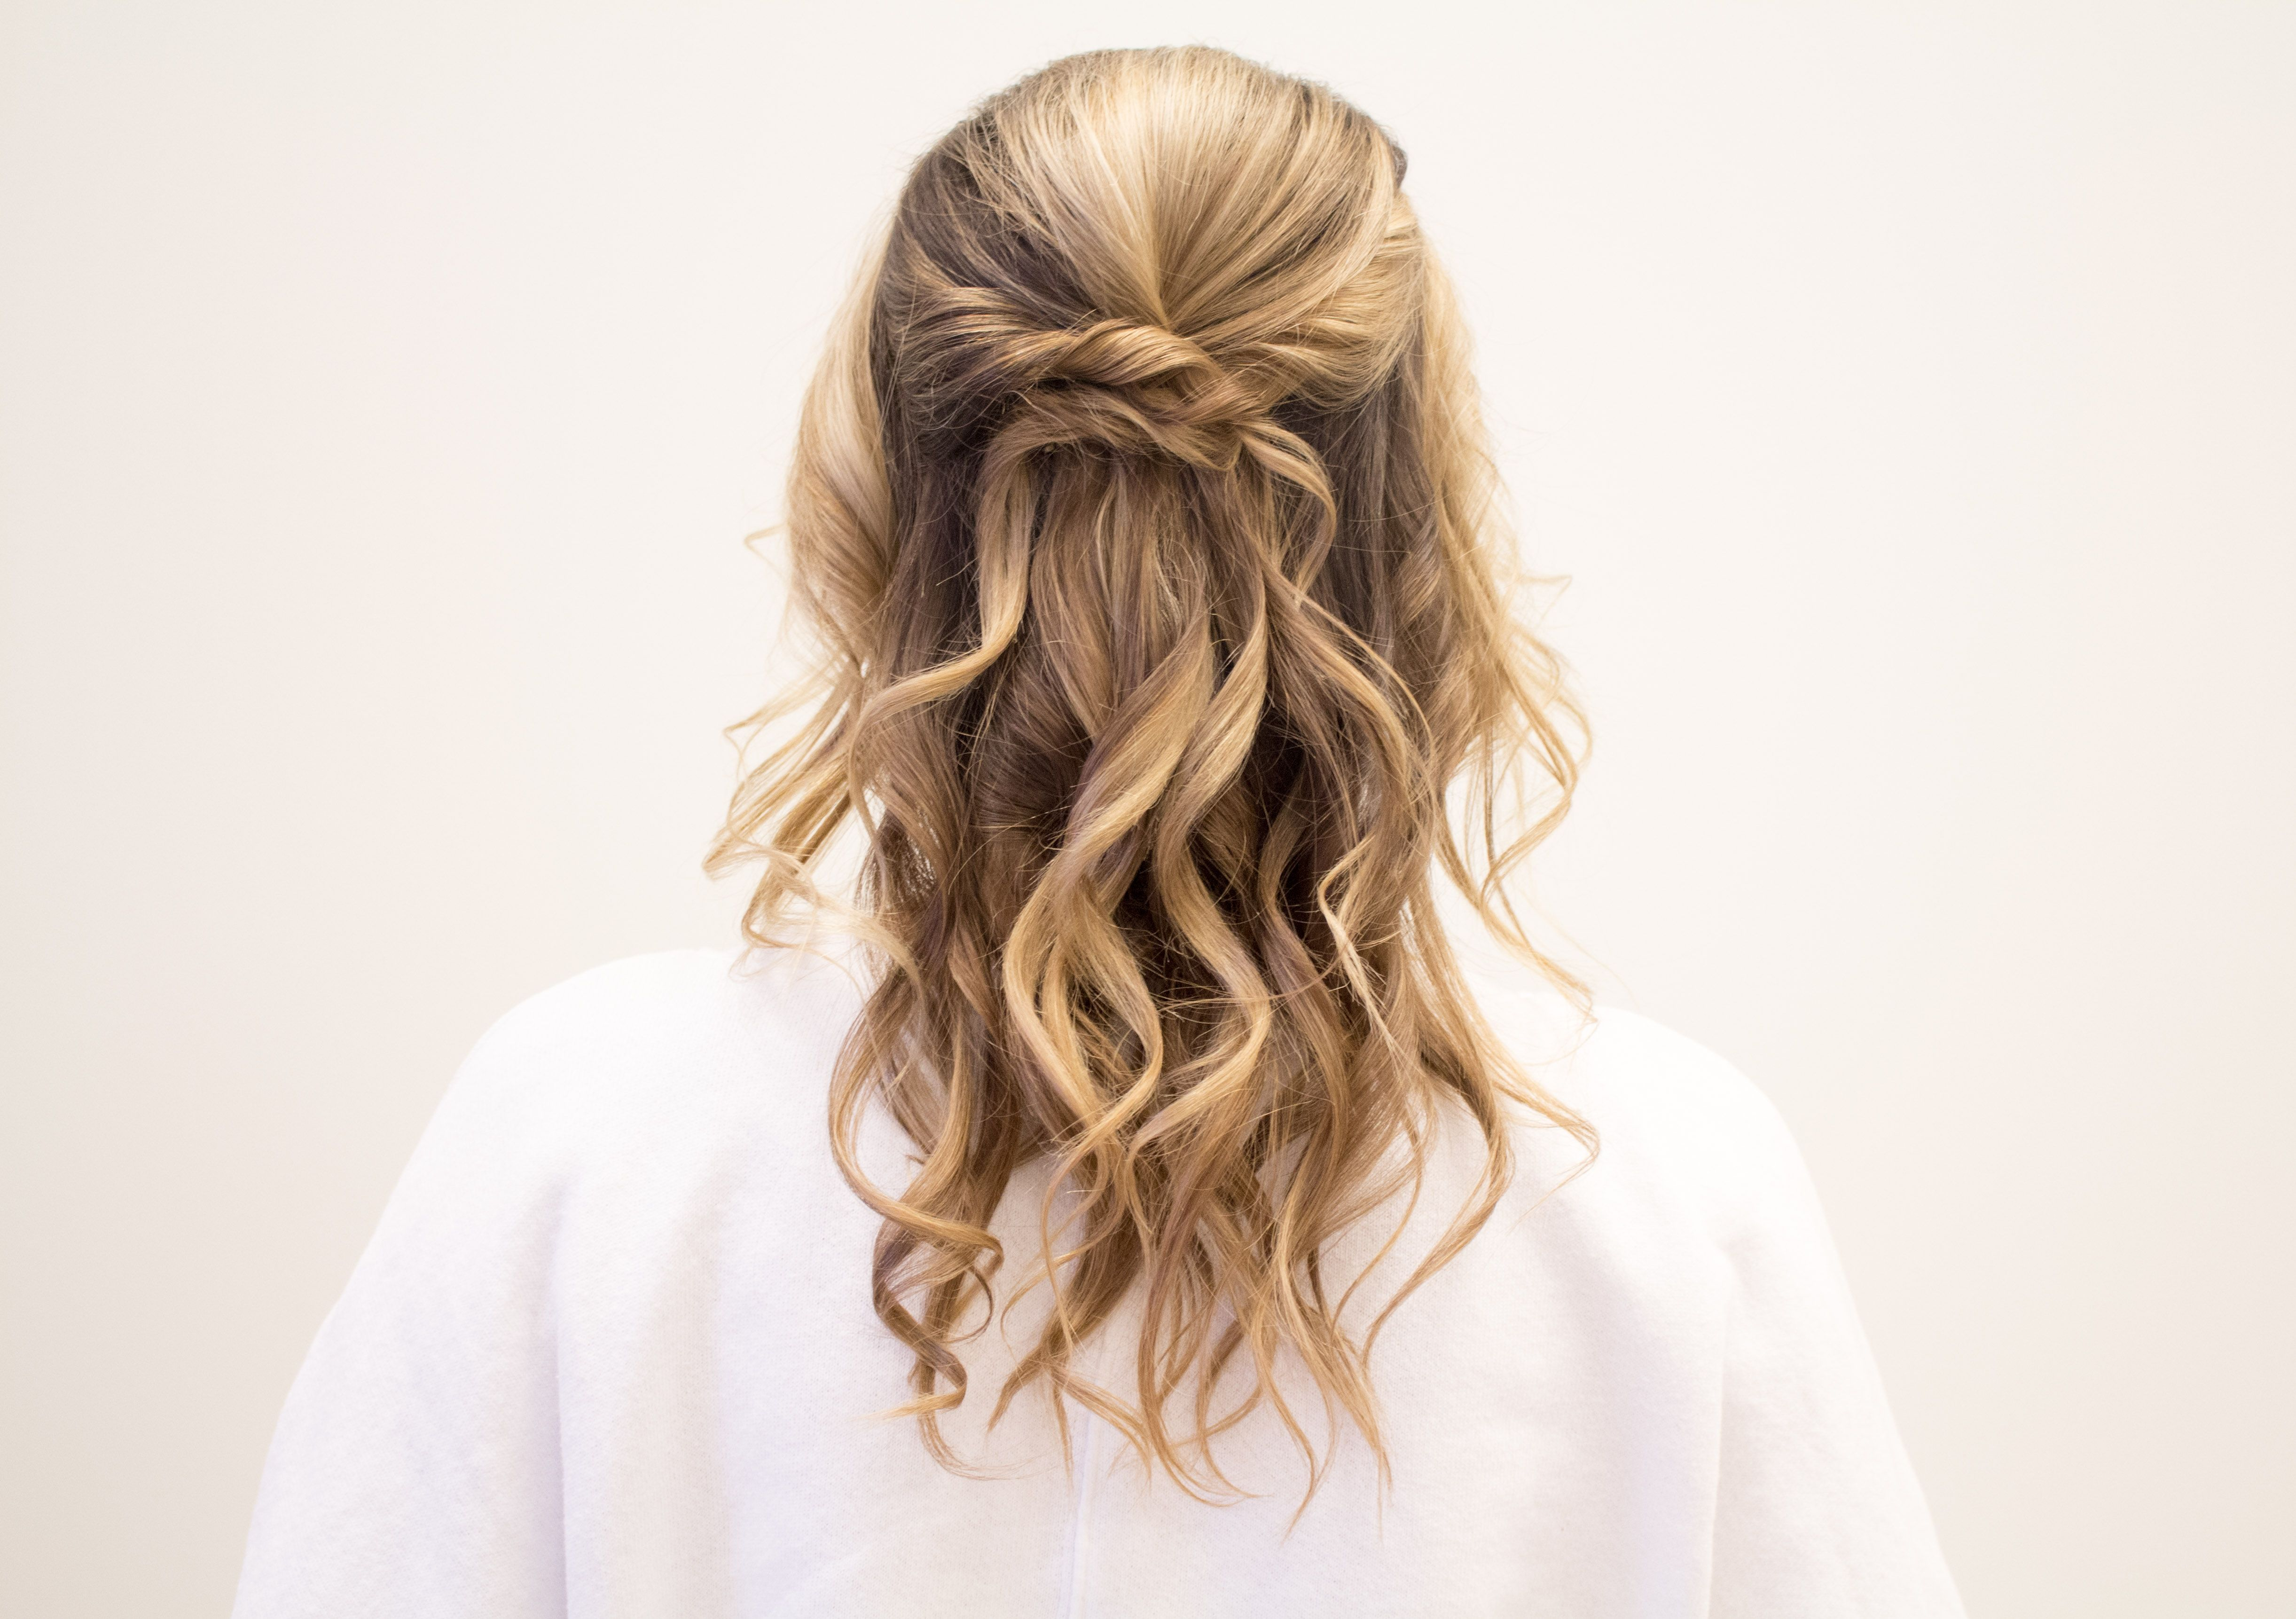 Easy Holiday Hair Styles With Hair Cuttery Holiday Hairstyles Easy Hair Updos Hair Styles